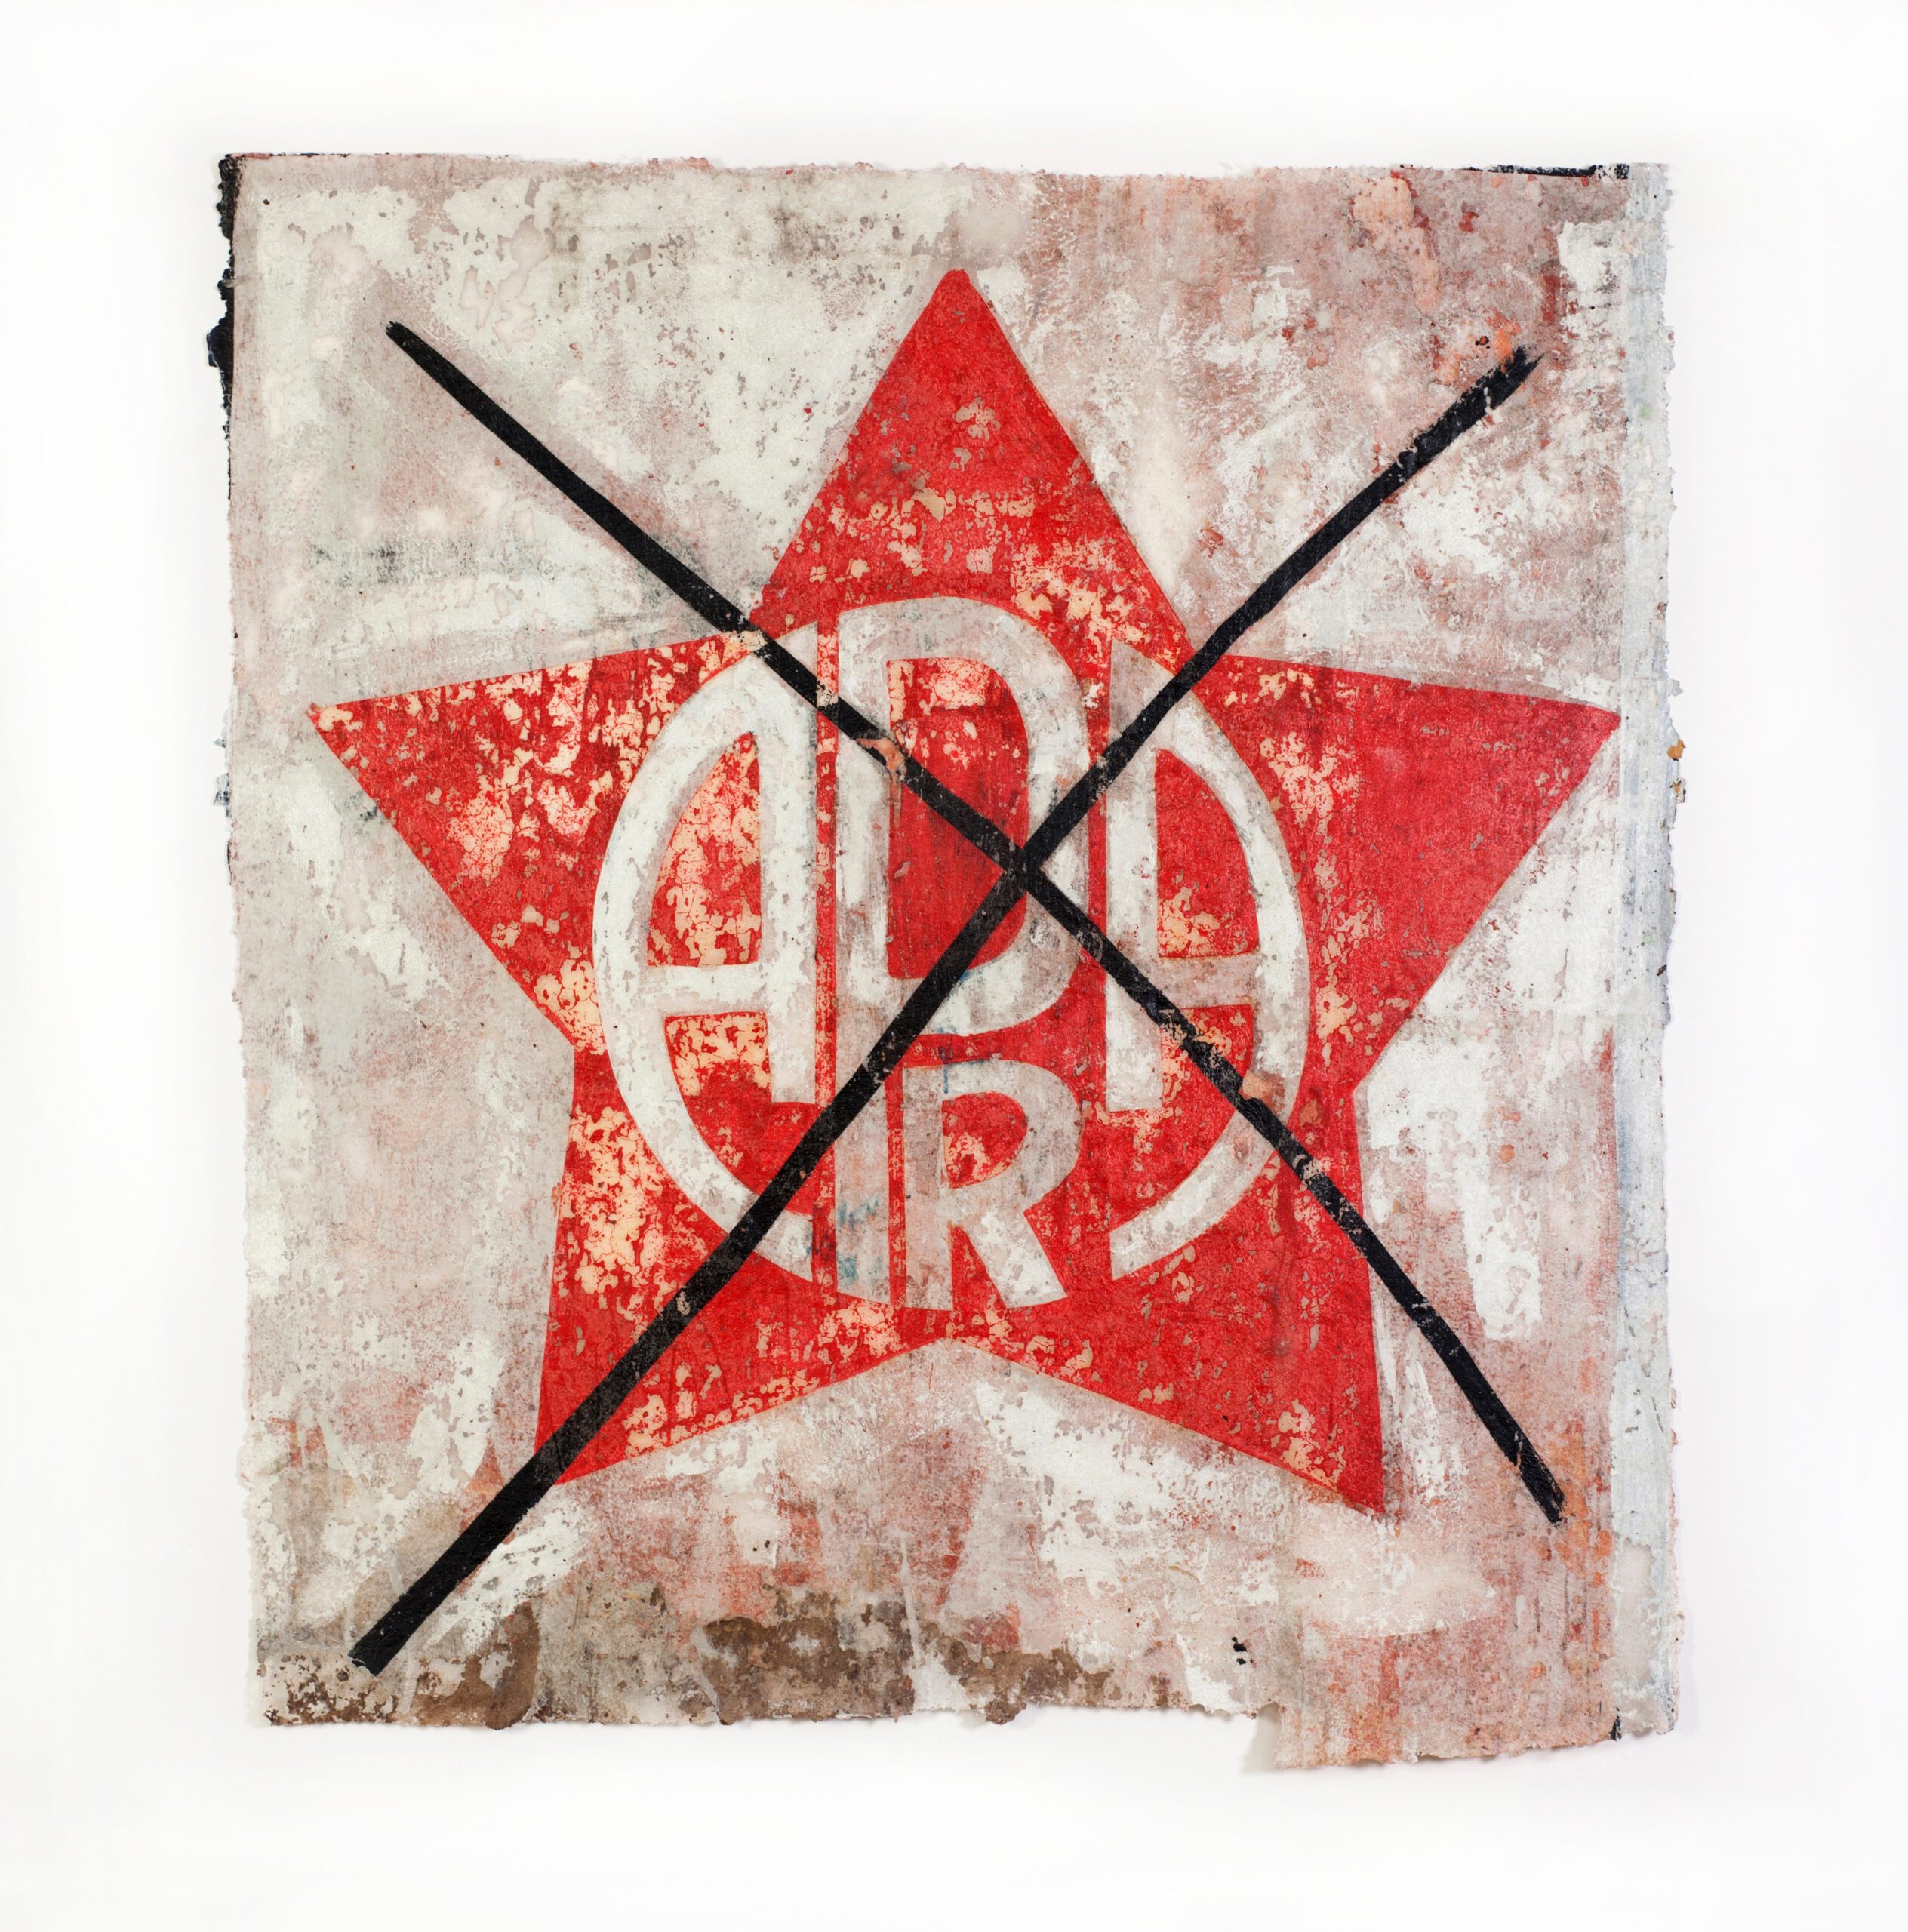 RUINOPHILIA – José Carlos Martinat 2021